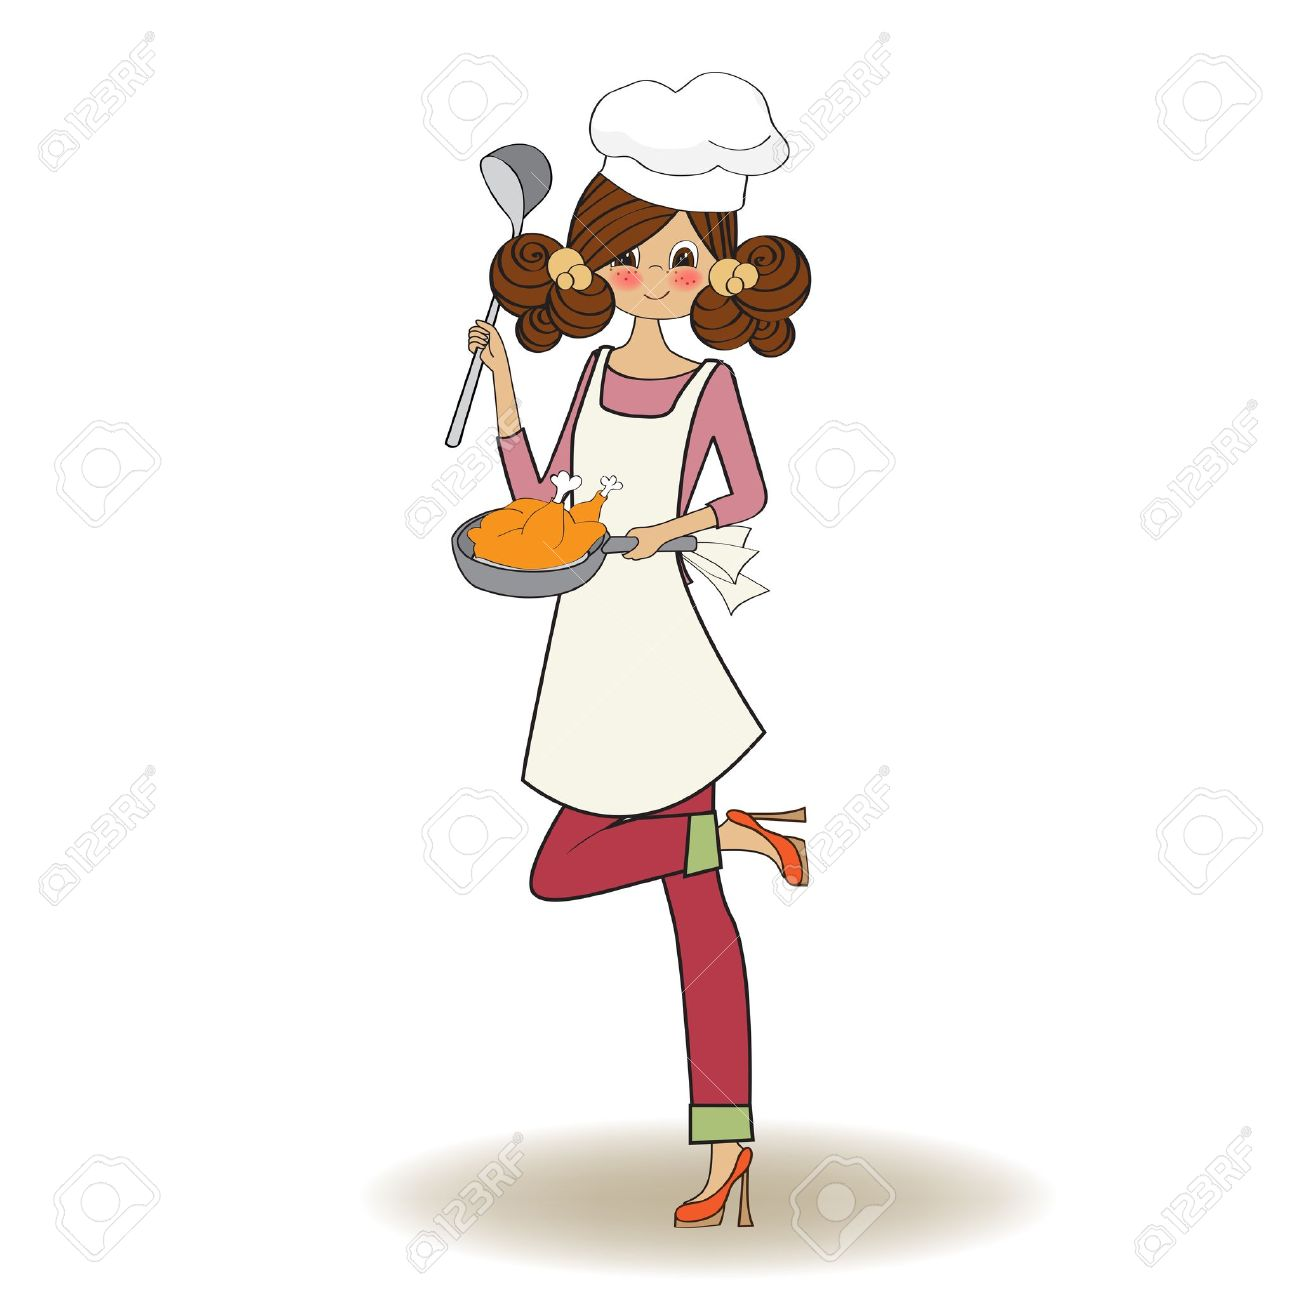 Woman Cooking, Illustration In Vector Royalty Free Cliparts ...